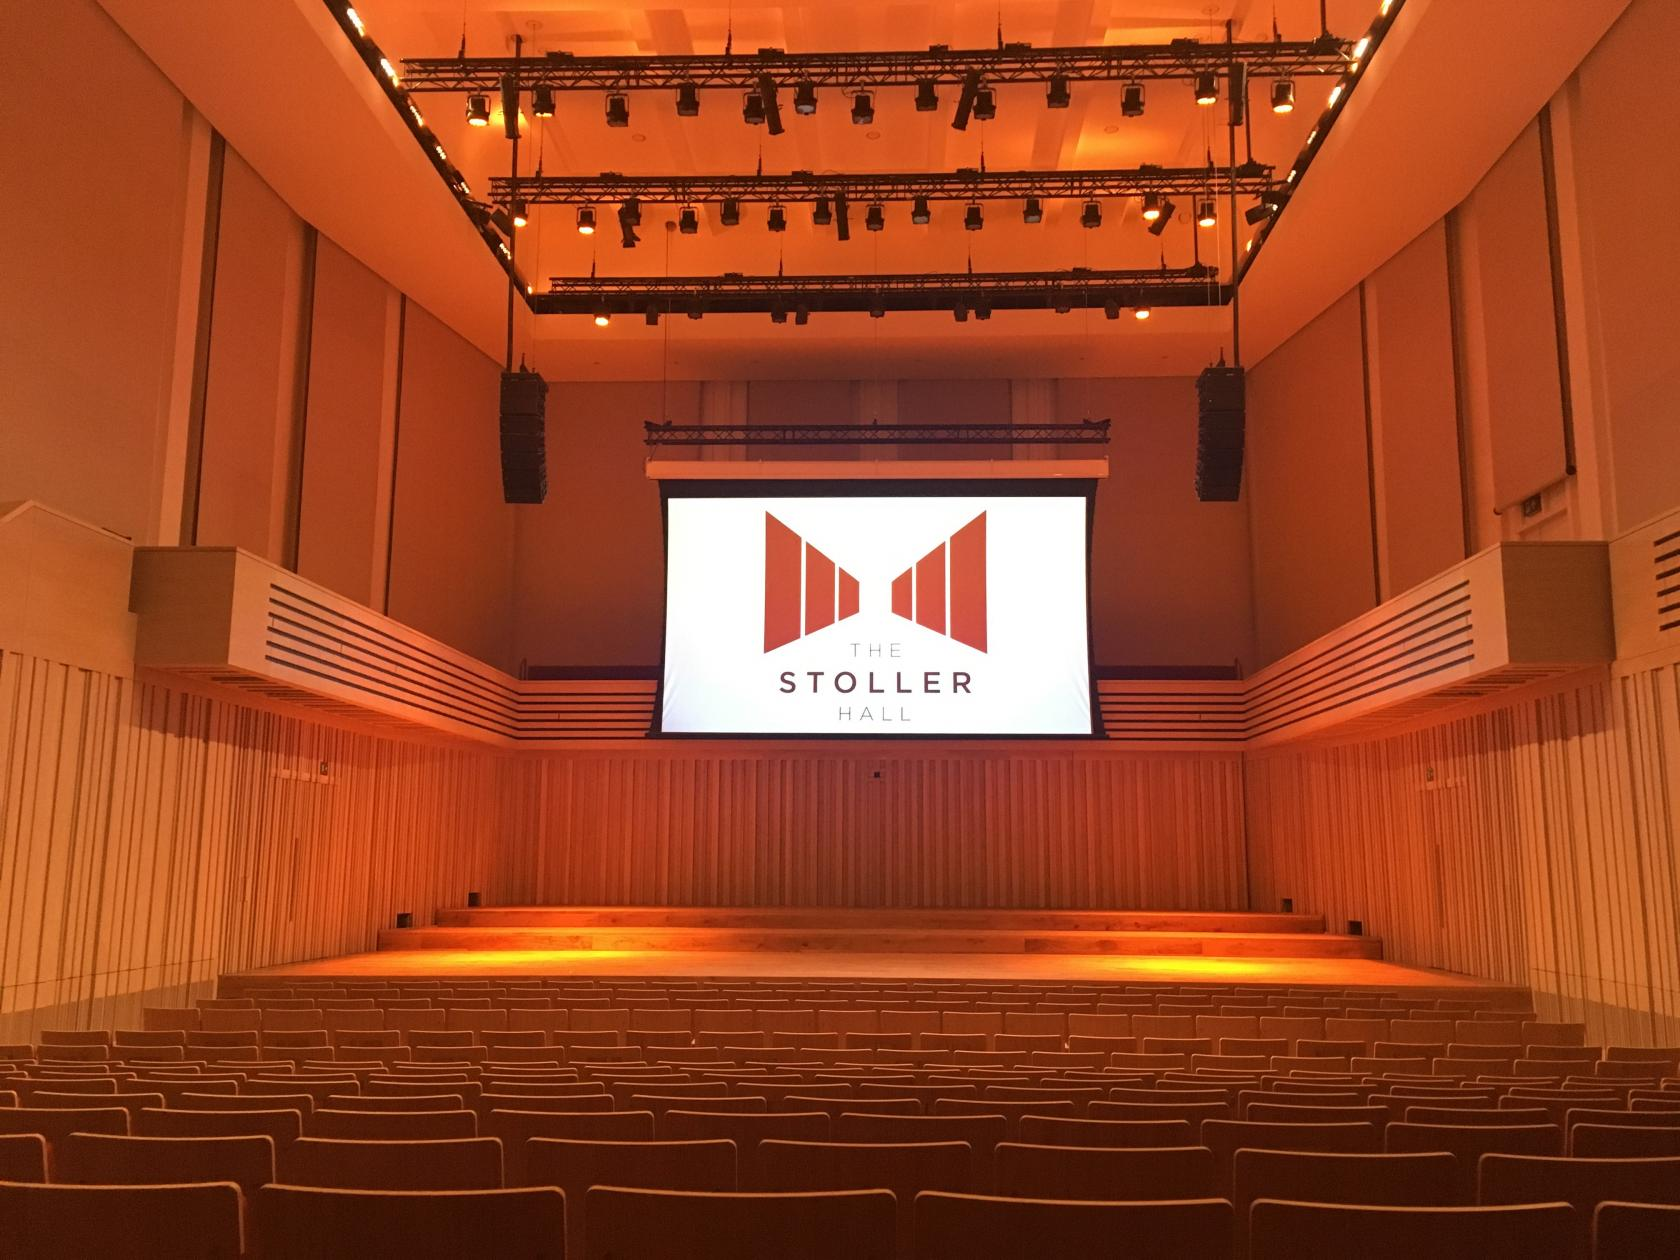 Stoller Hall For Private Venue Hire Prices Amp Reviews